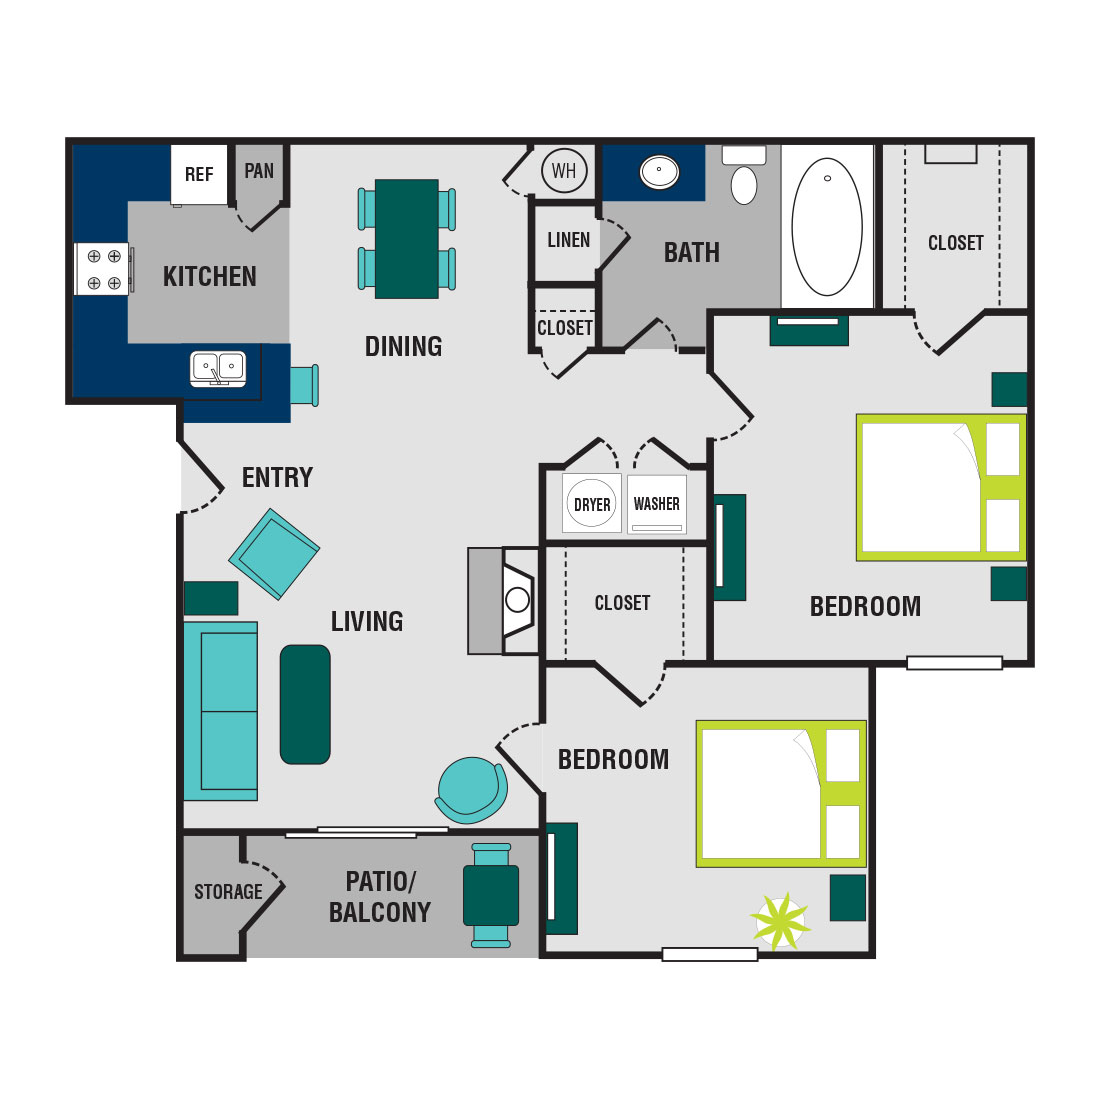 Floorplan - 2 Bed/1 Bath image